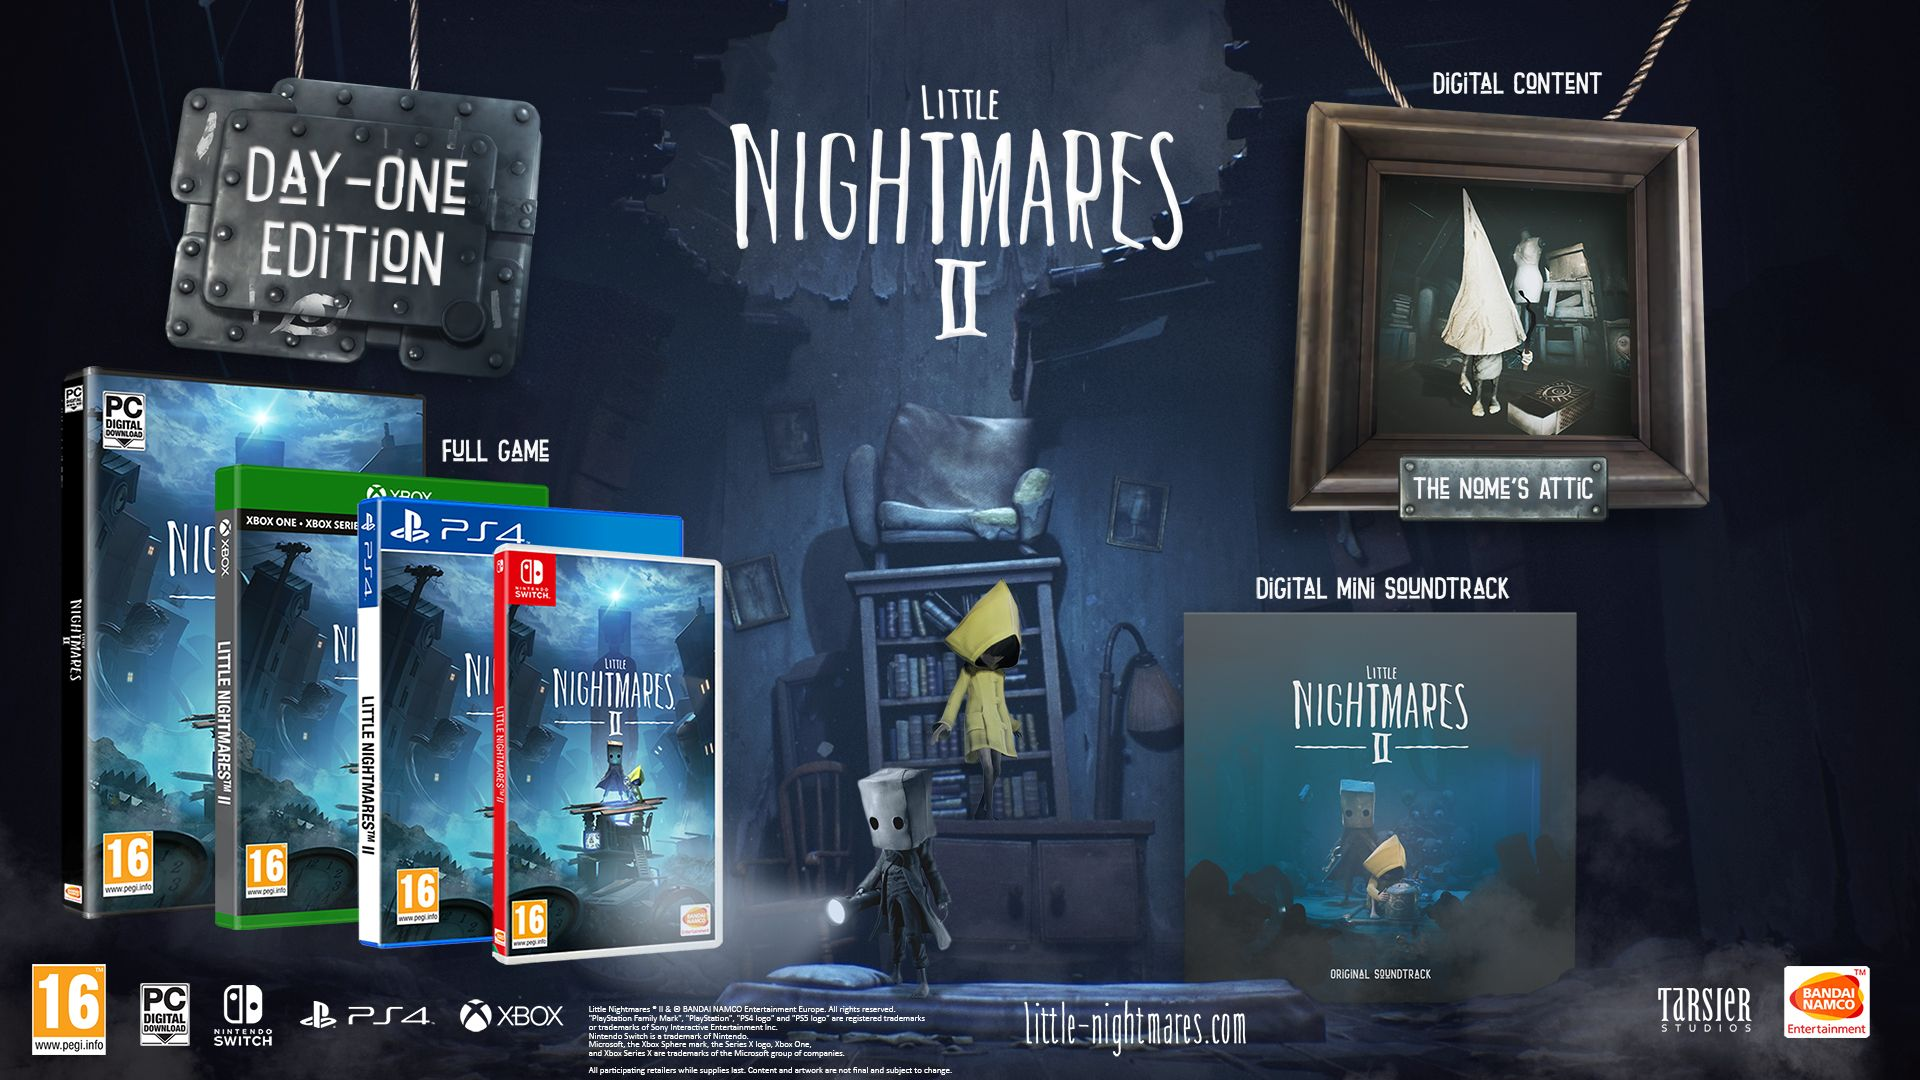 Day 1 Edition Little Nightmares 2